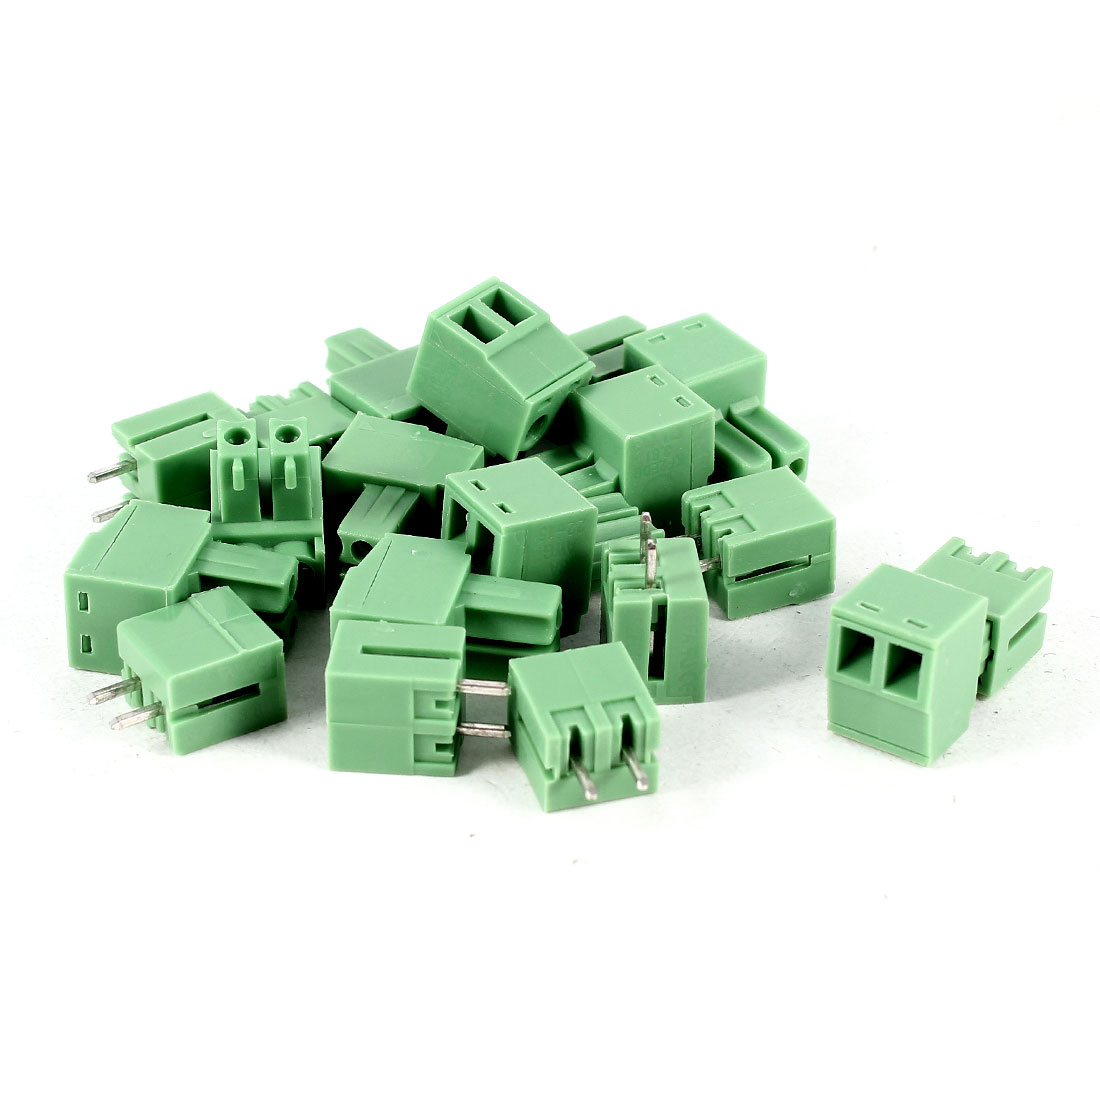 10 Pcs Green KF2EDG 3.81mm 2Position 2Pin Pluggable Screw Terminal Block Connector 300V 8A